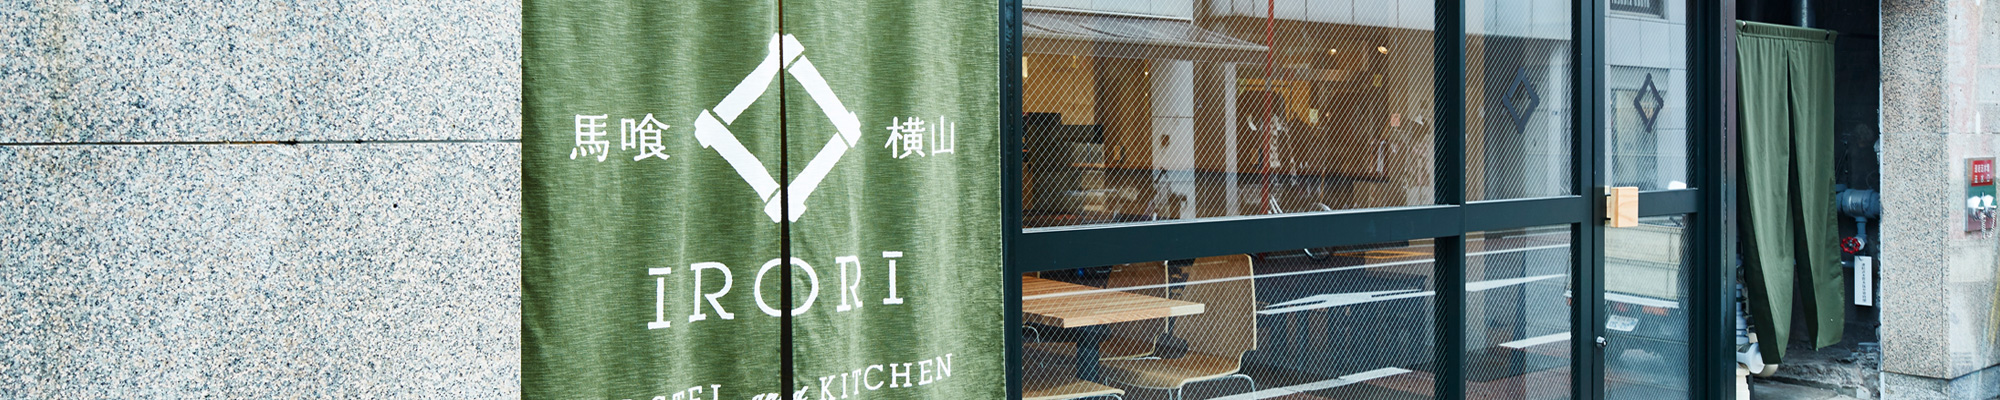 IRORI Nihonbashi Hostel and Kitchen写真